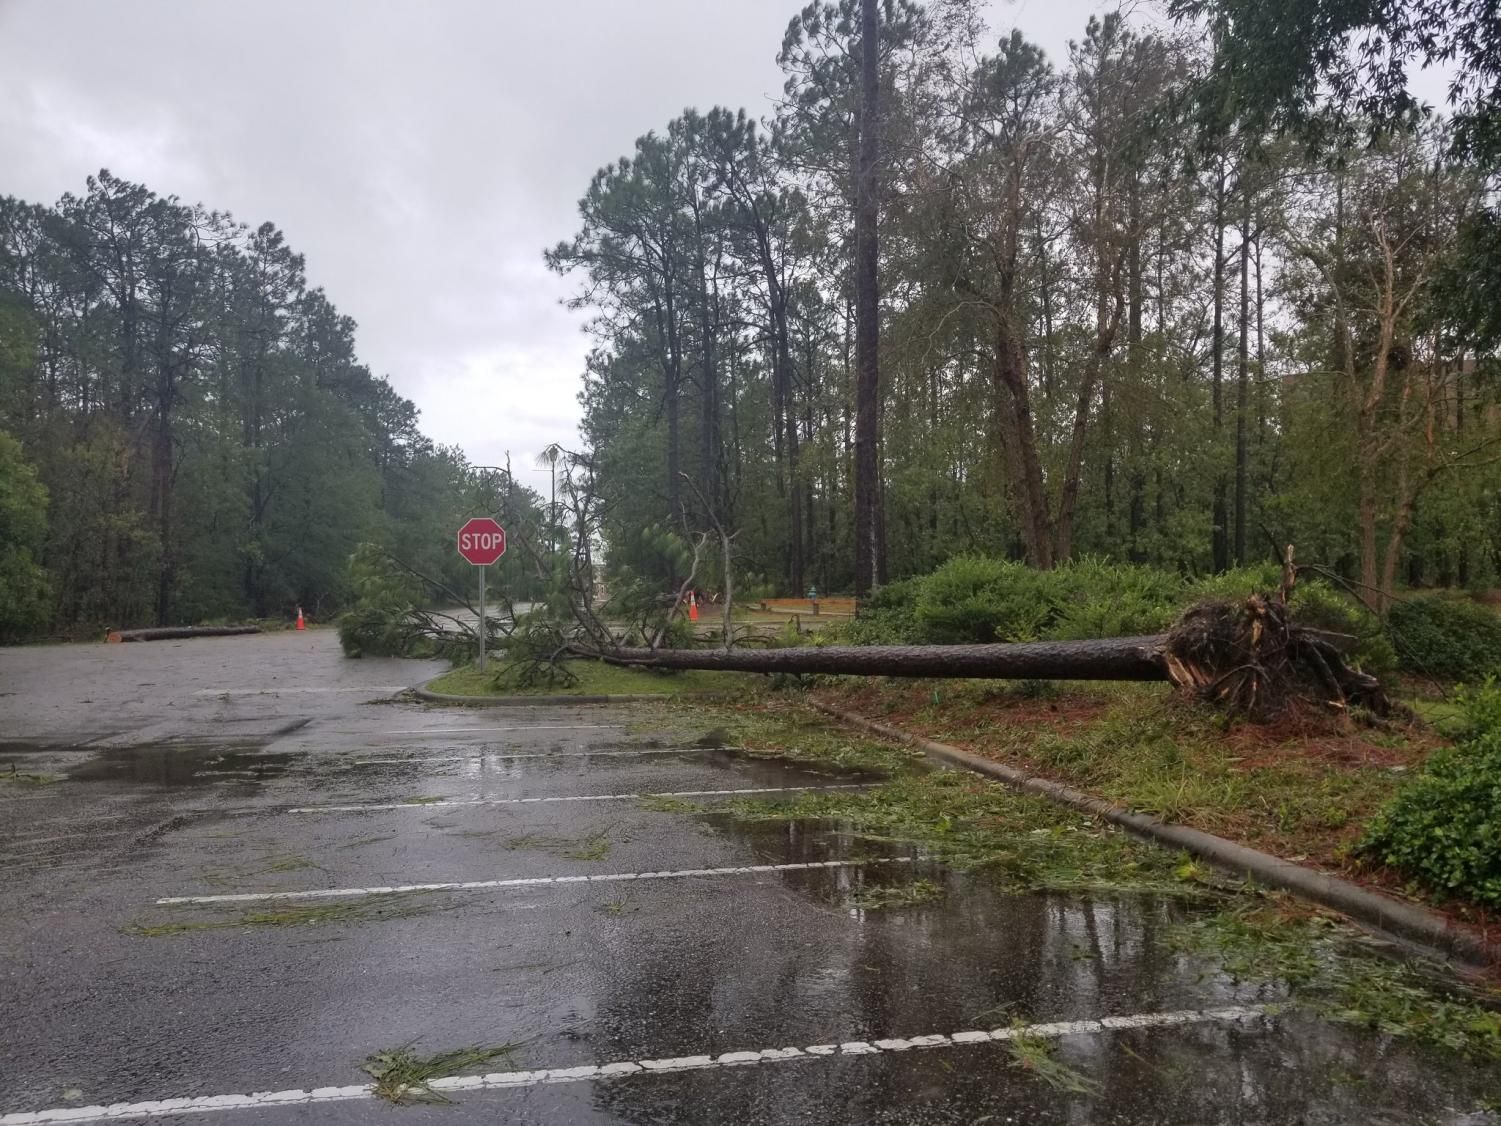 A+fallen+tree+blocks+the+curve+turning+Randall+Drive+into+Reynolds+Drive+on+the+edge+of+UNC+Wilmington%27s+campus.+The+damage+was+a+result+of+high+winds+and+rain+brought+by+Hurricane+Florence.